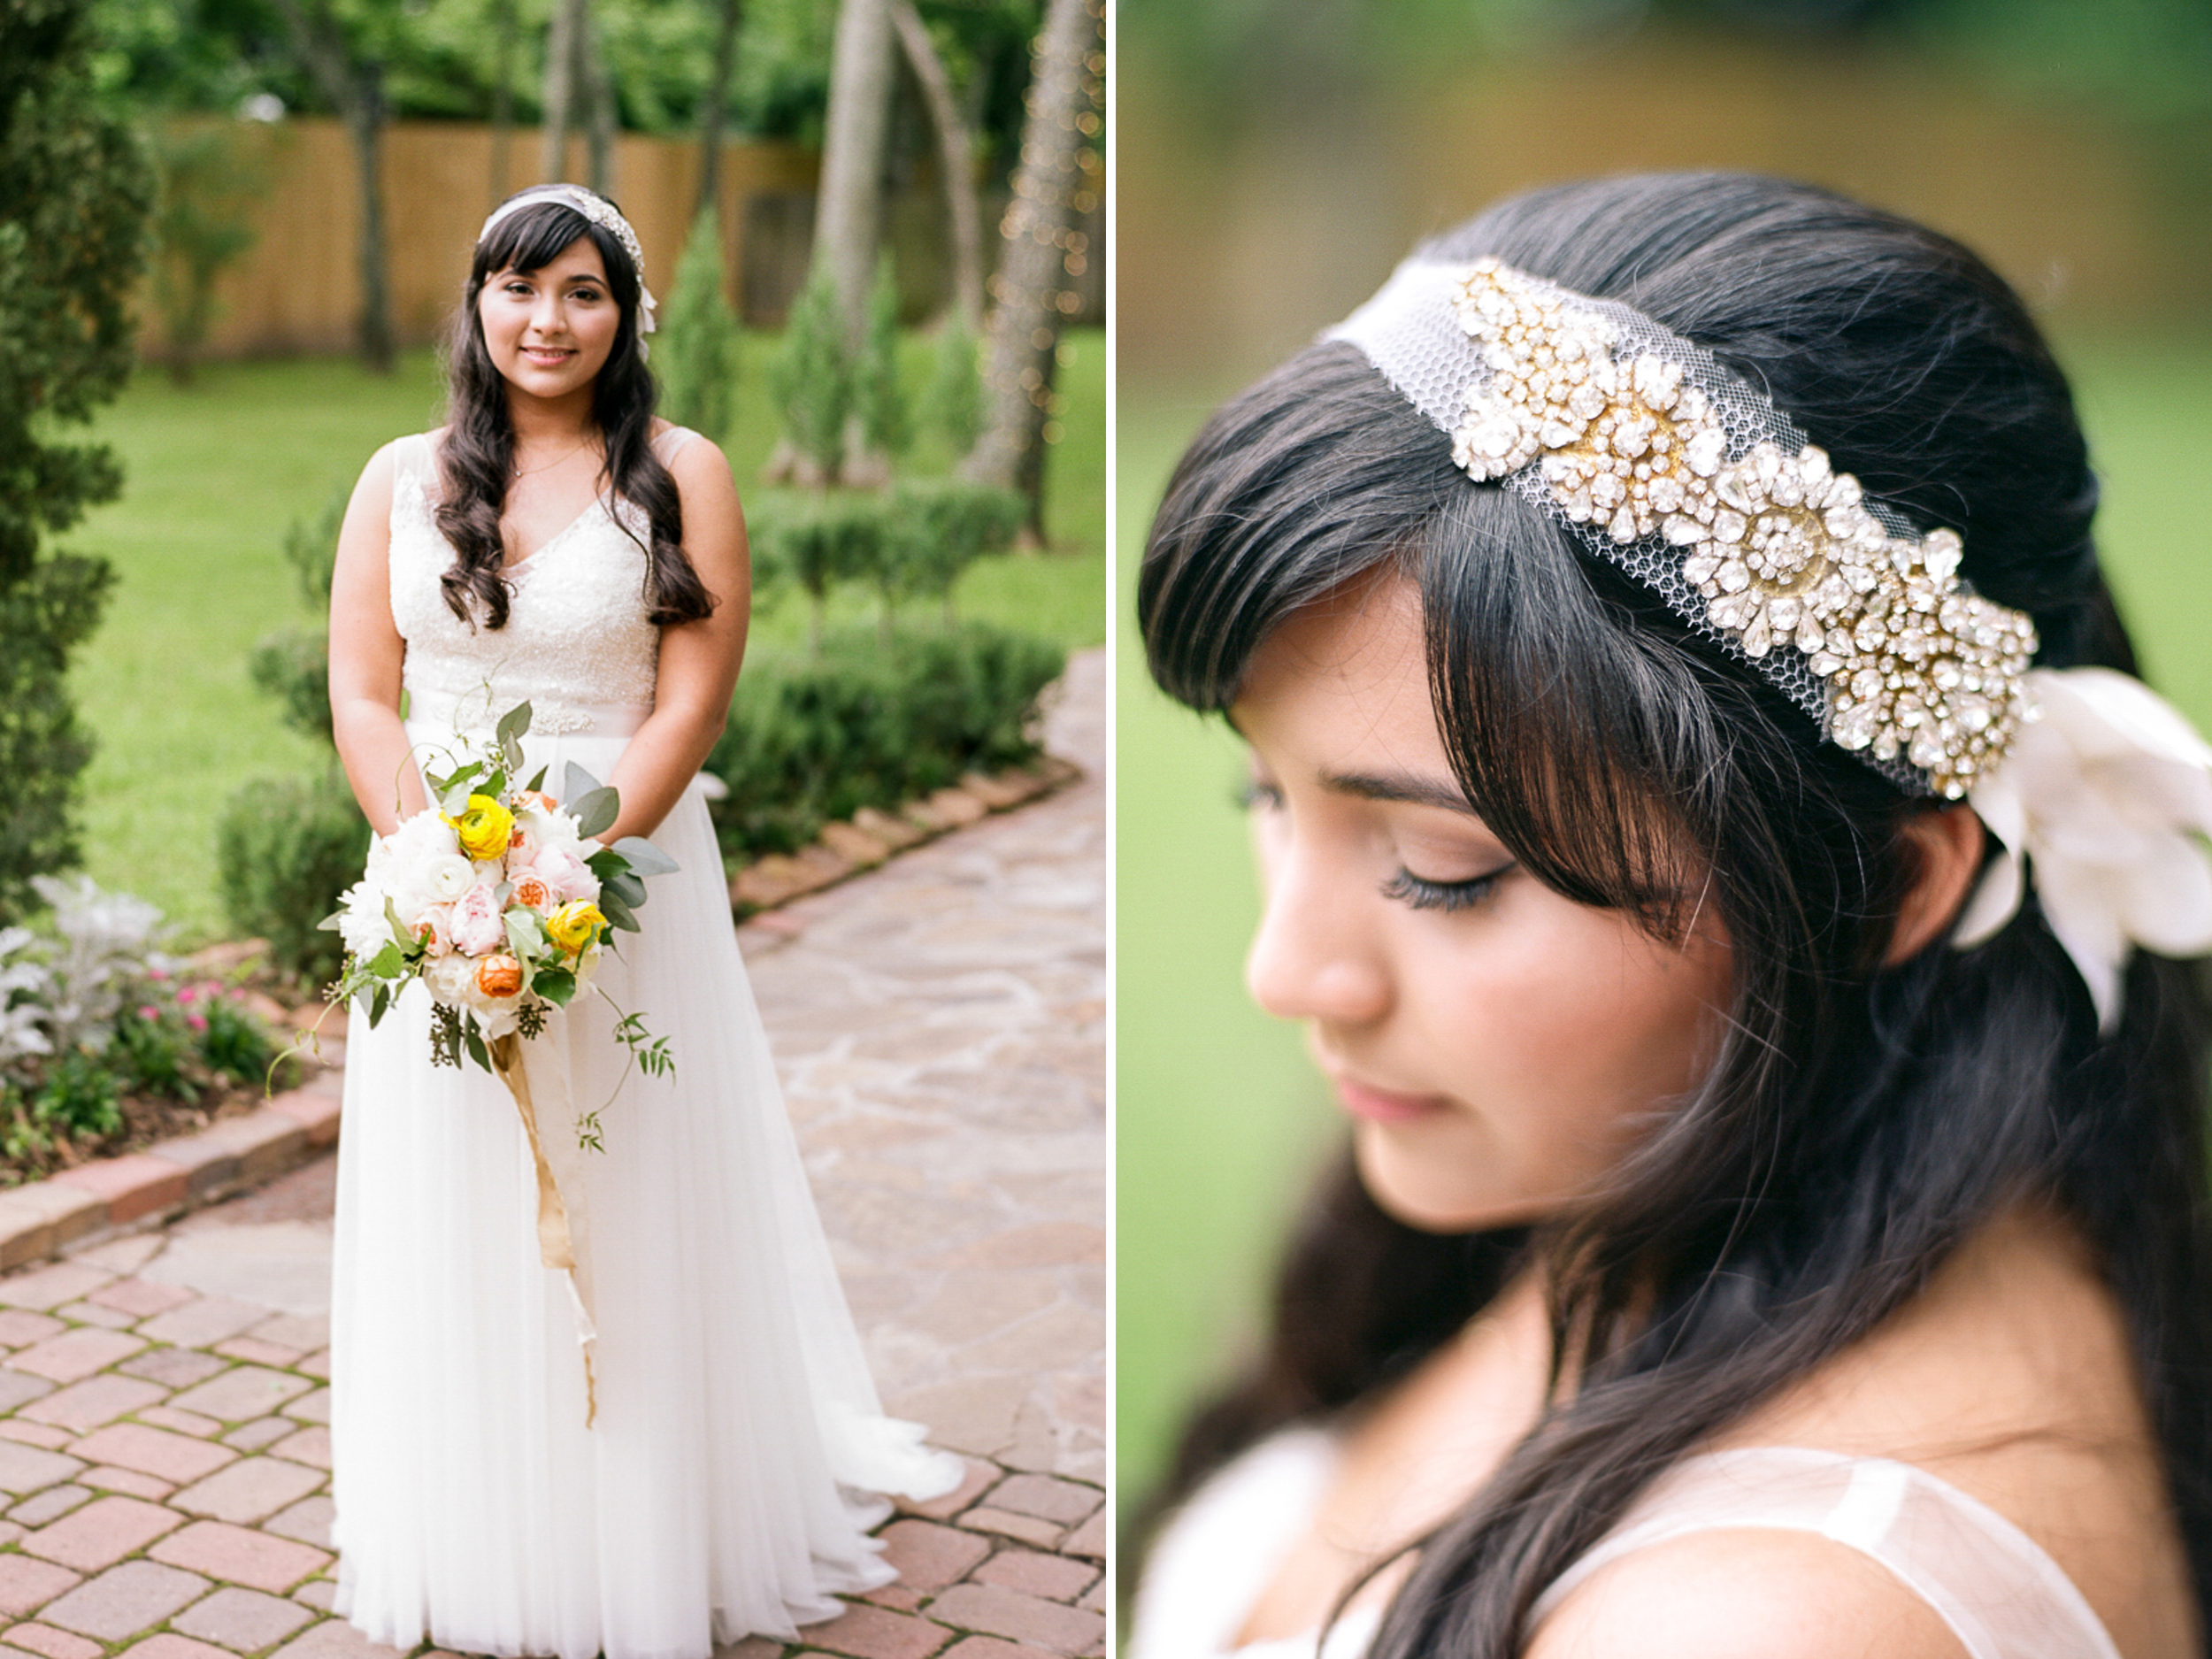 Dana Fernandez Photography Houston Texas Destination Photographer Film Ruffled Blog Wedding Bridal First Look Featured Photography Oak Tree Manor Houston-50.jpg